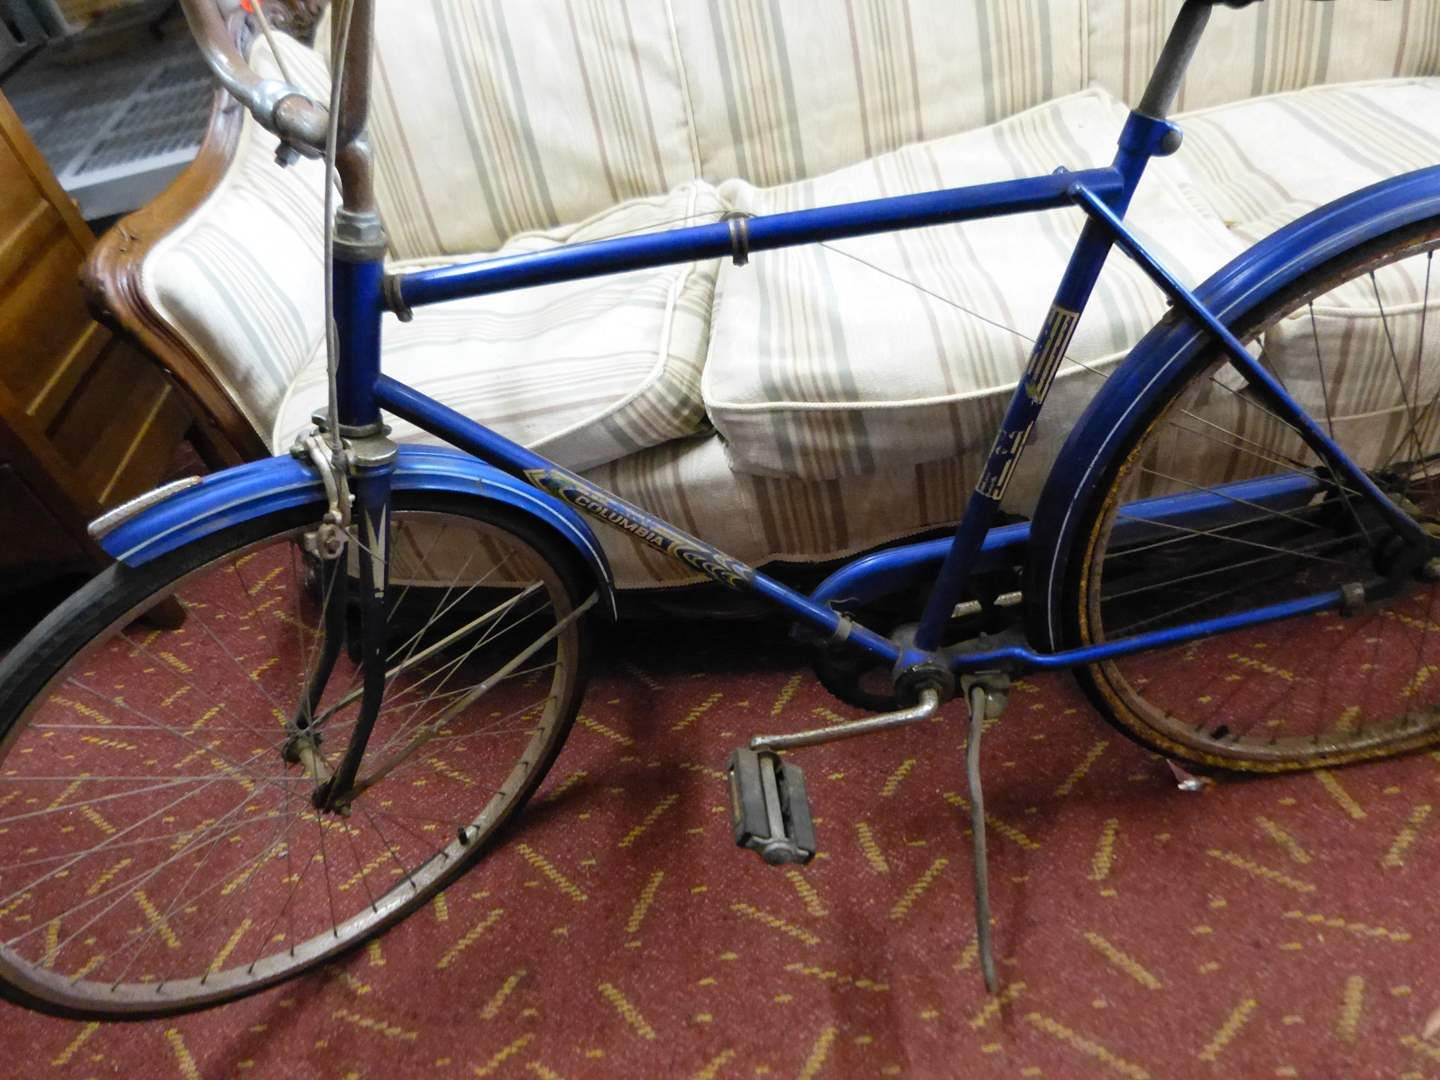 Lot # 295  Vintage Colombia Roadster bicycle (does't look pretty but HIGHLY collectible) (main image)